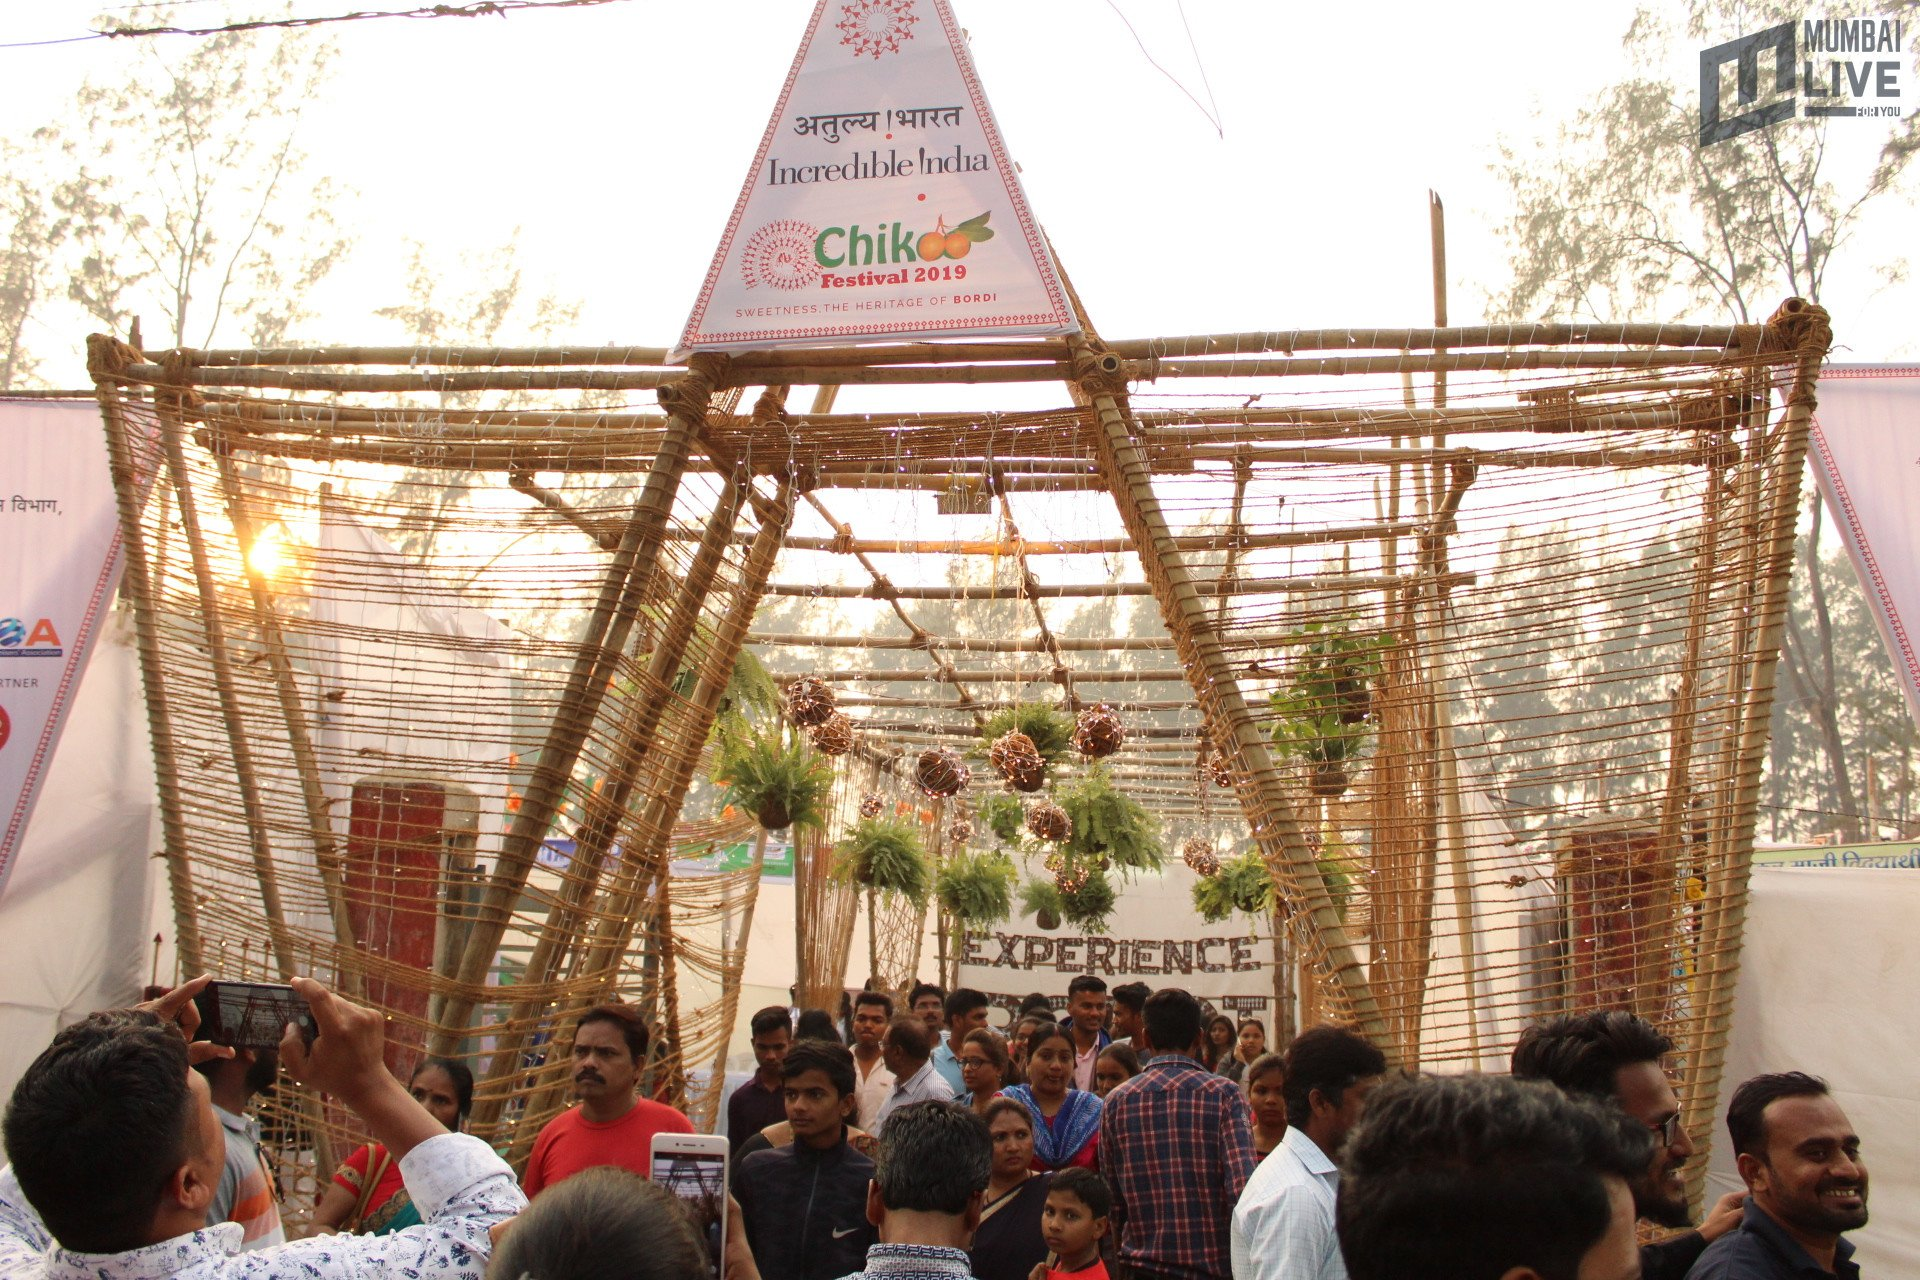 The Chikoo Festival: Everything about adventure, culture and wine